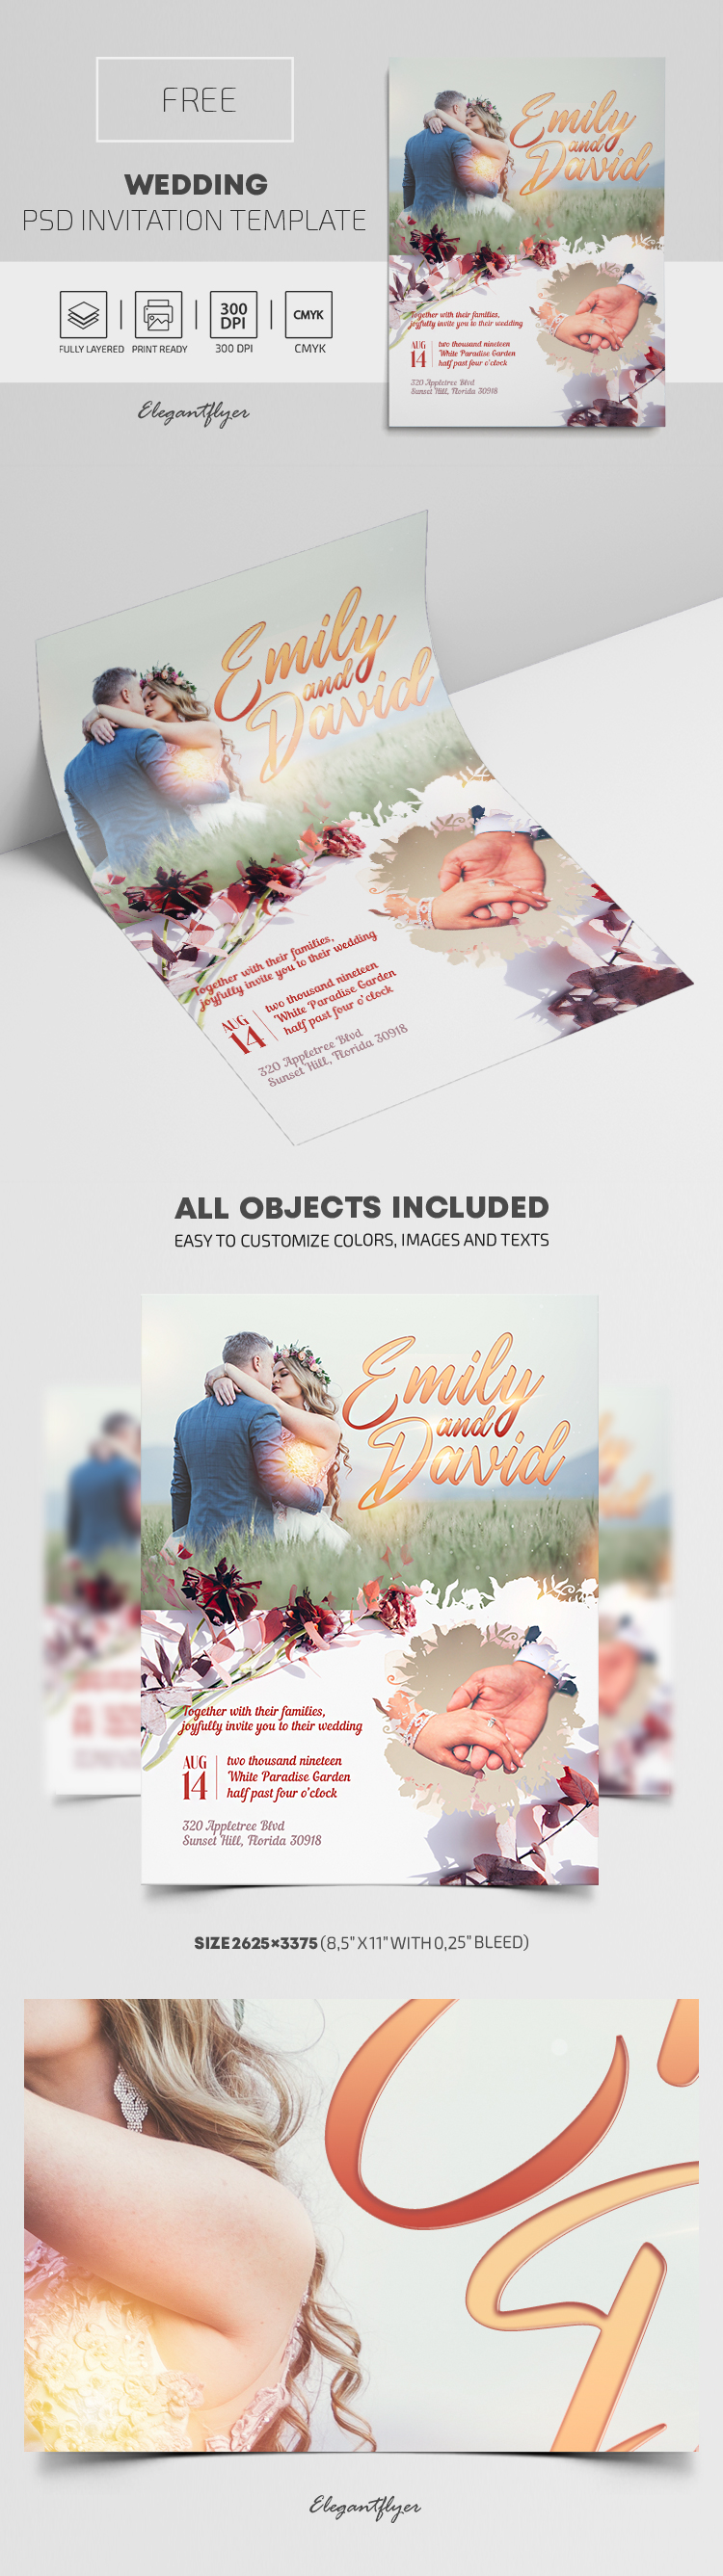 Free Wedding Invitation Template in PSD